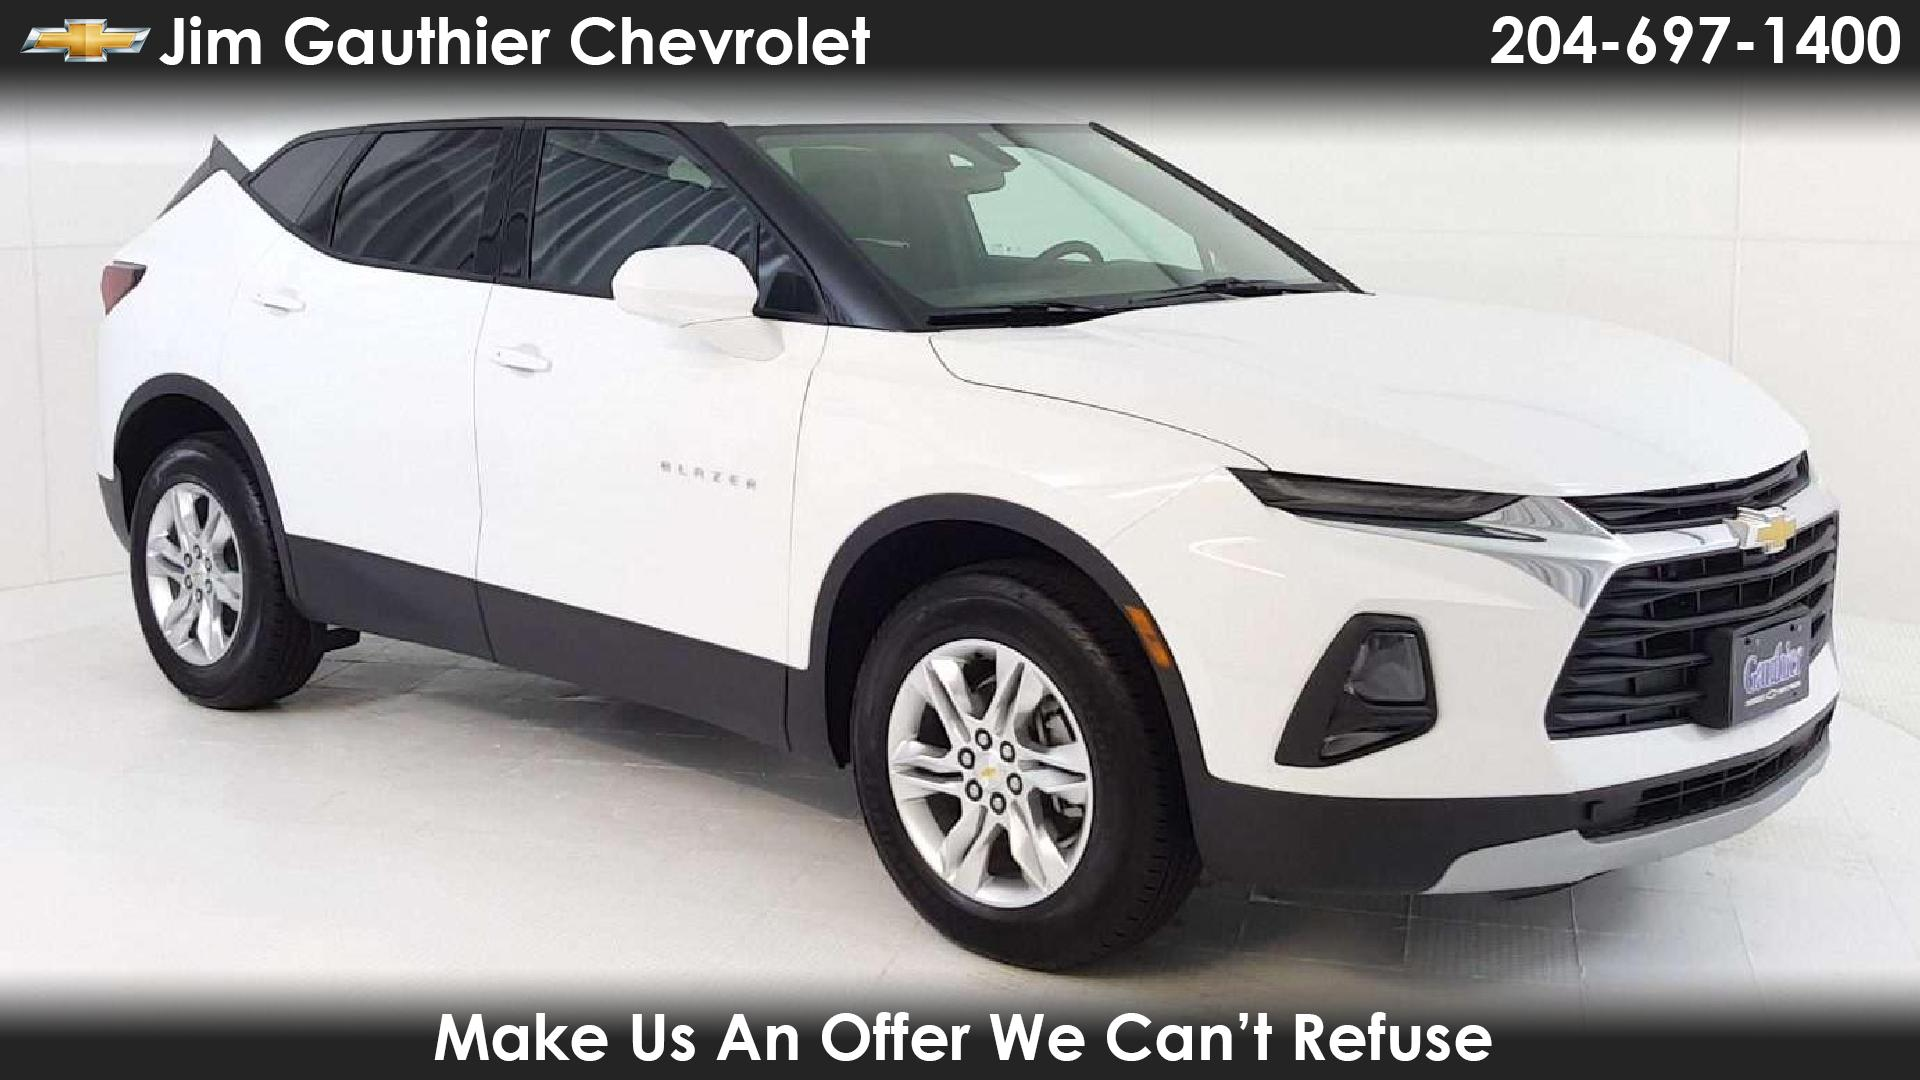 Used Cars For Sale In Winnipeg >> Jim Gauthier Chevrolet In Winnipeg New Cars Trucks And